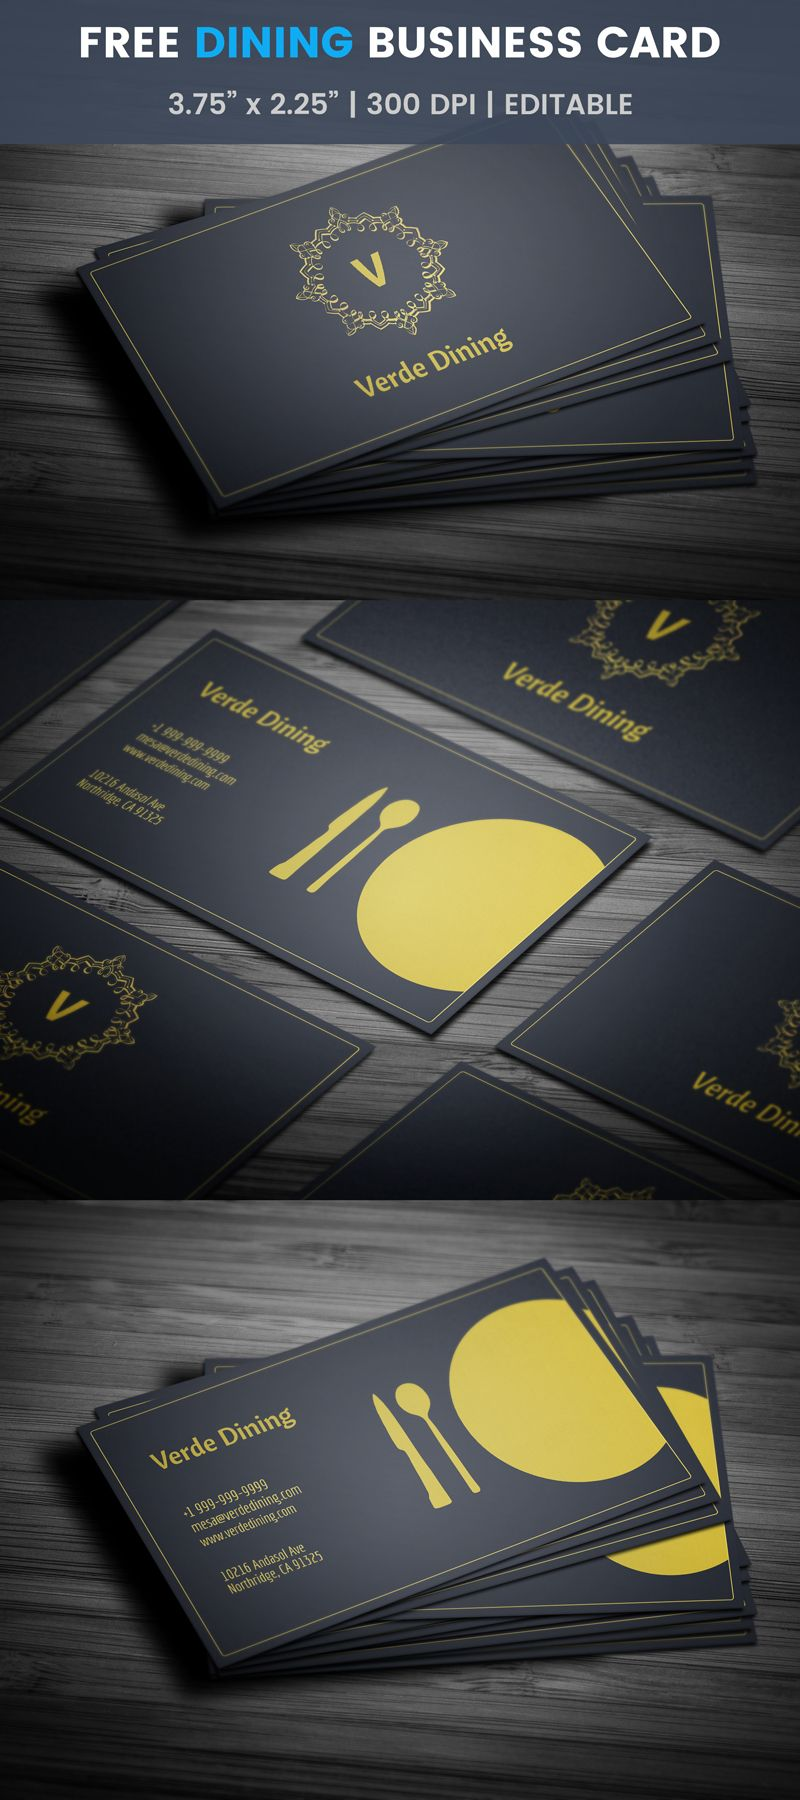 Free artistic restaurant business card template food design free artistic restaurant business card template food design dining flashek Gallery